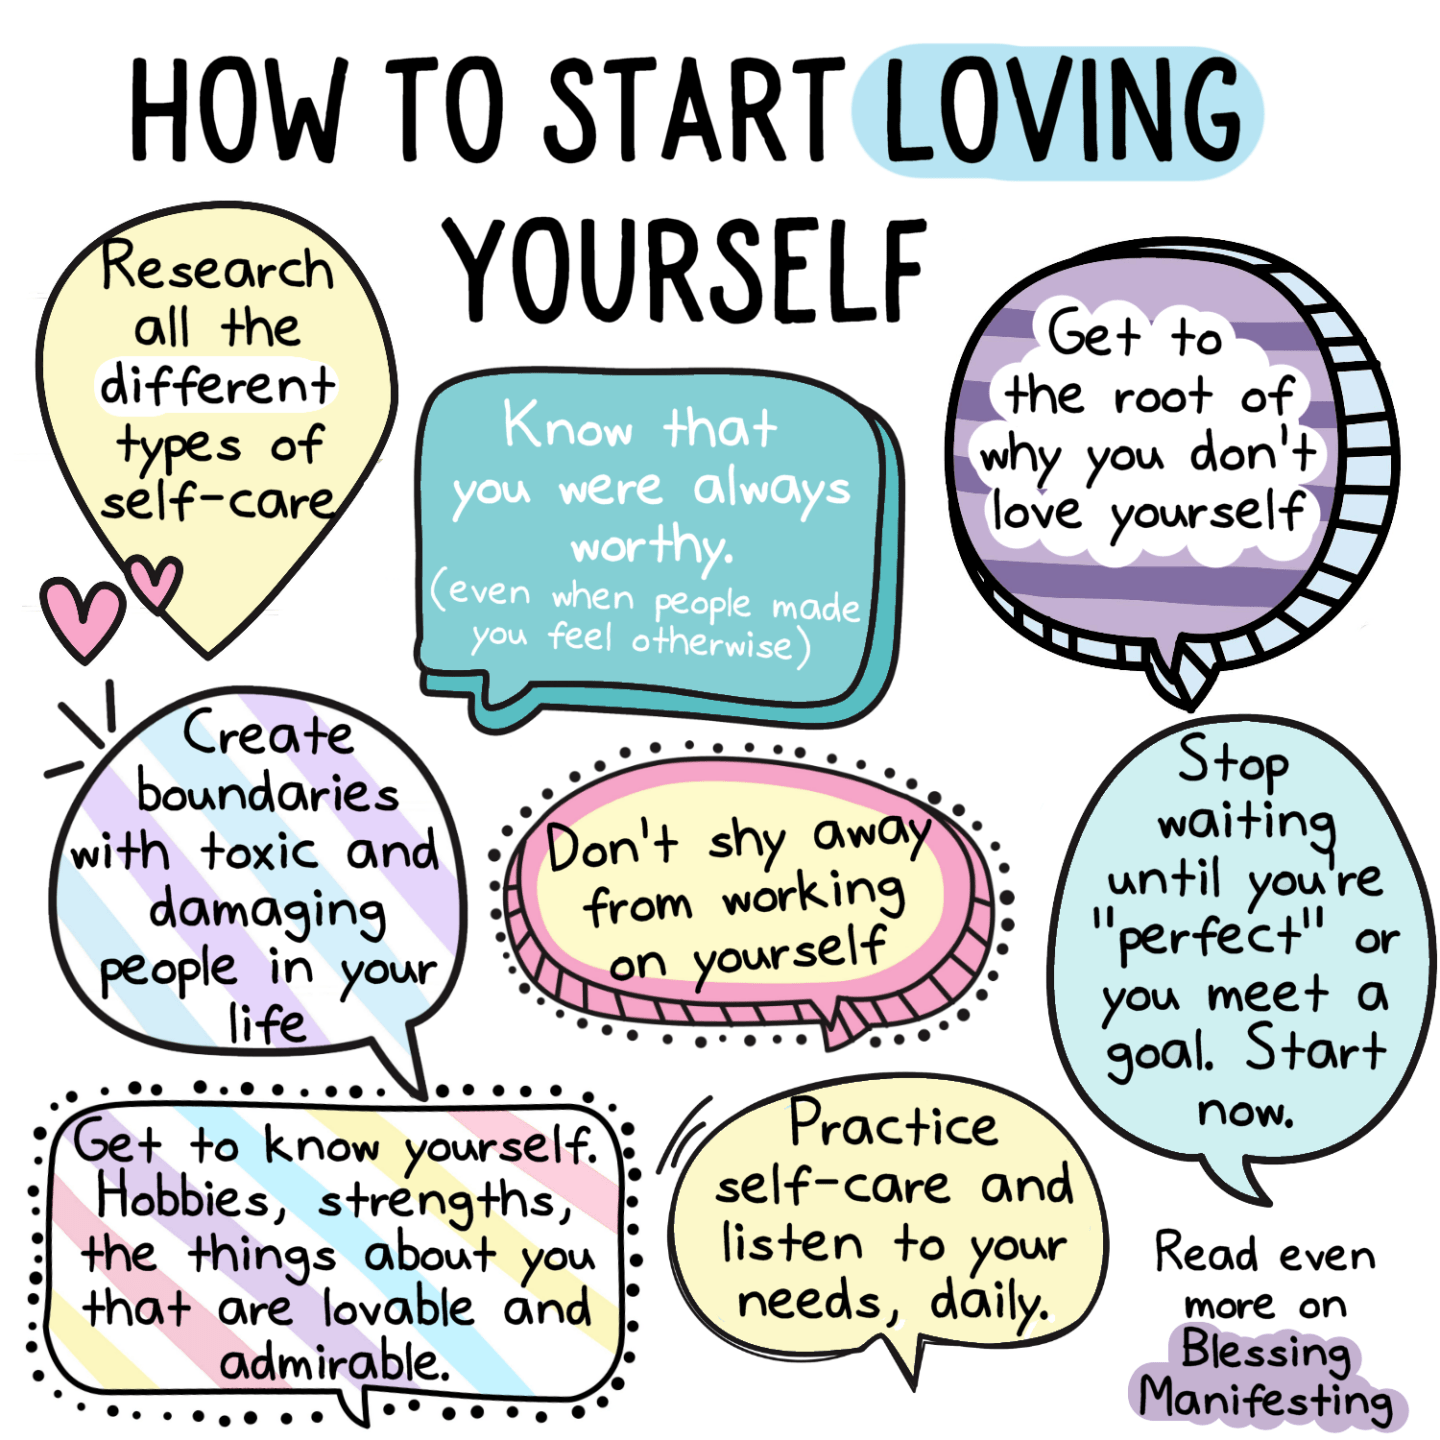 How To Start Loving Yourself - Blessing Manifesting